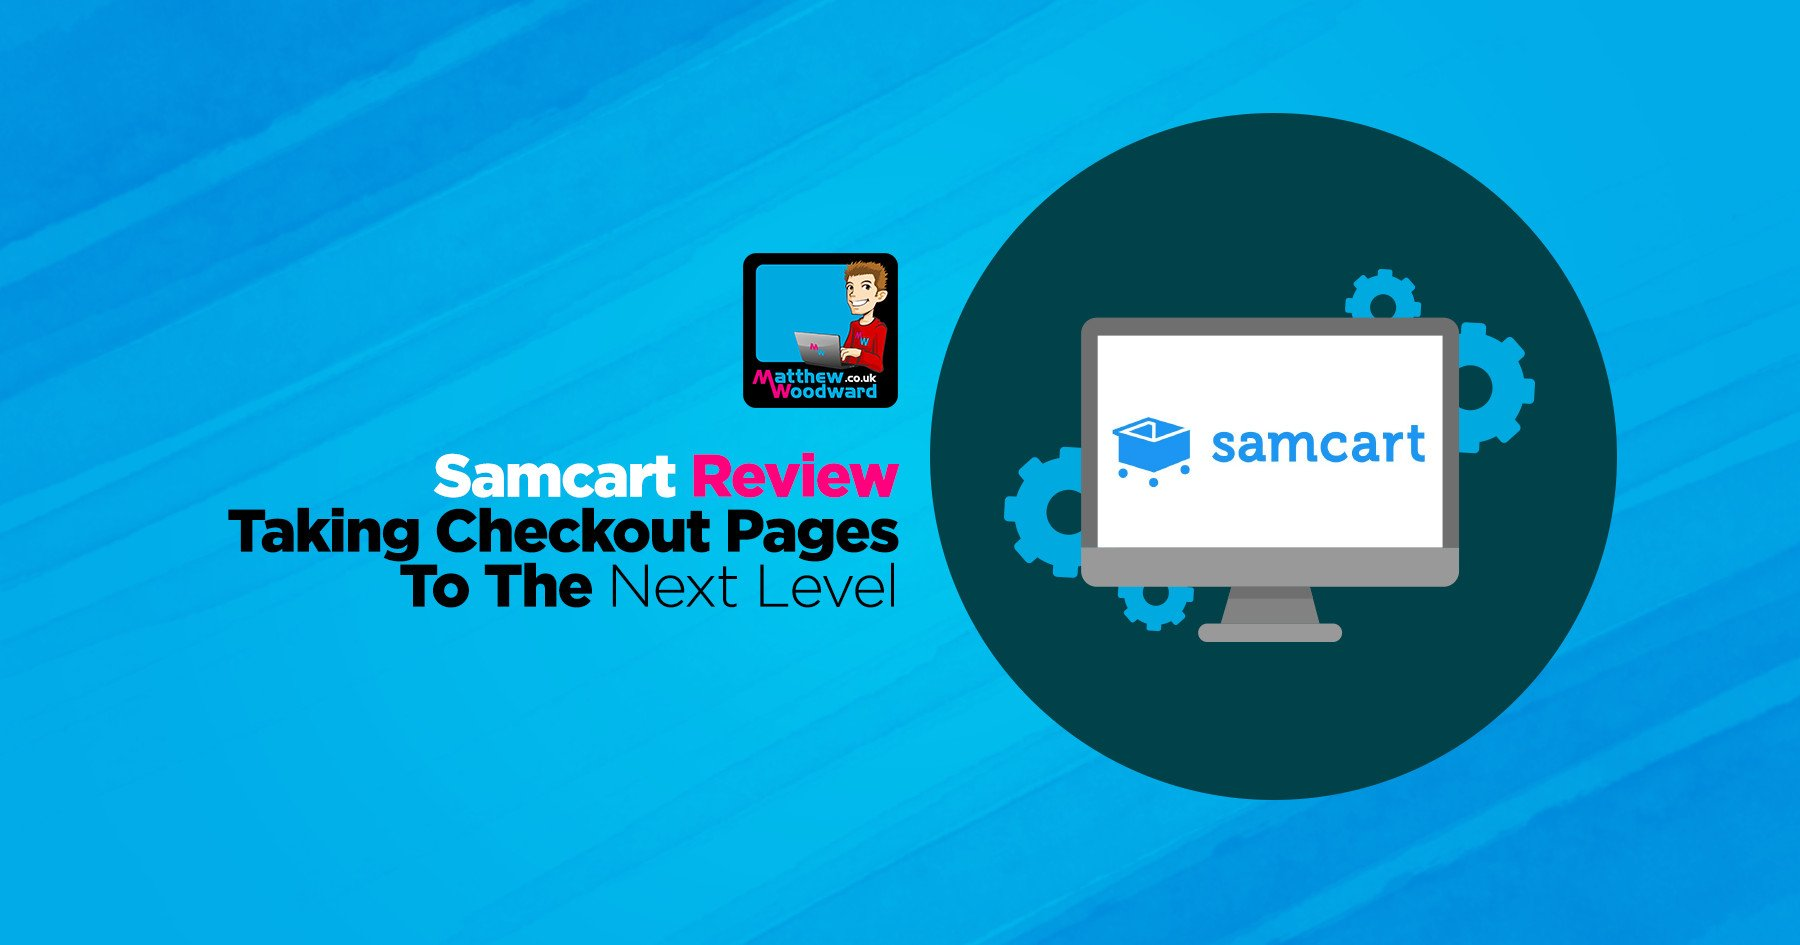 Price Cut Landing Page Software  Samcart